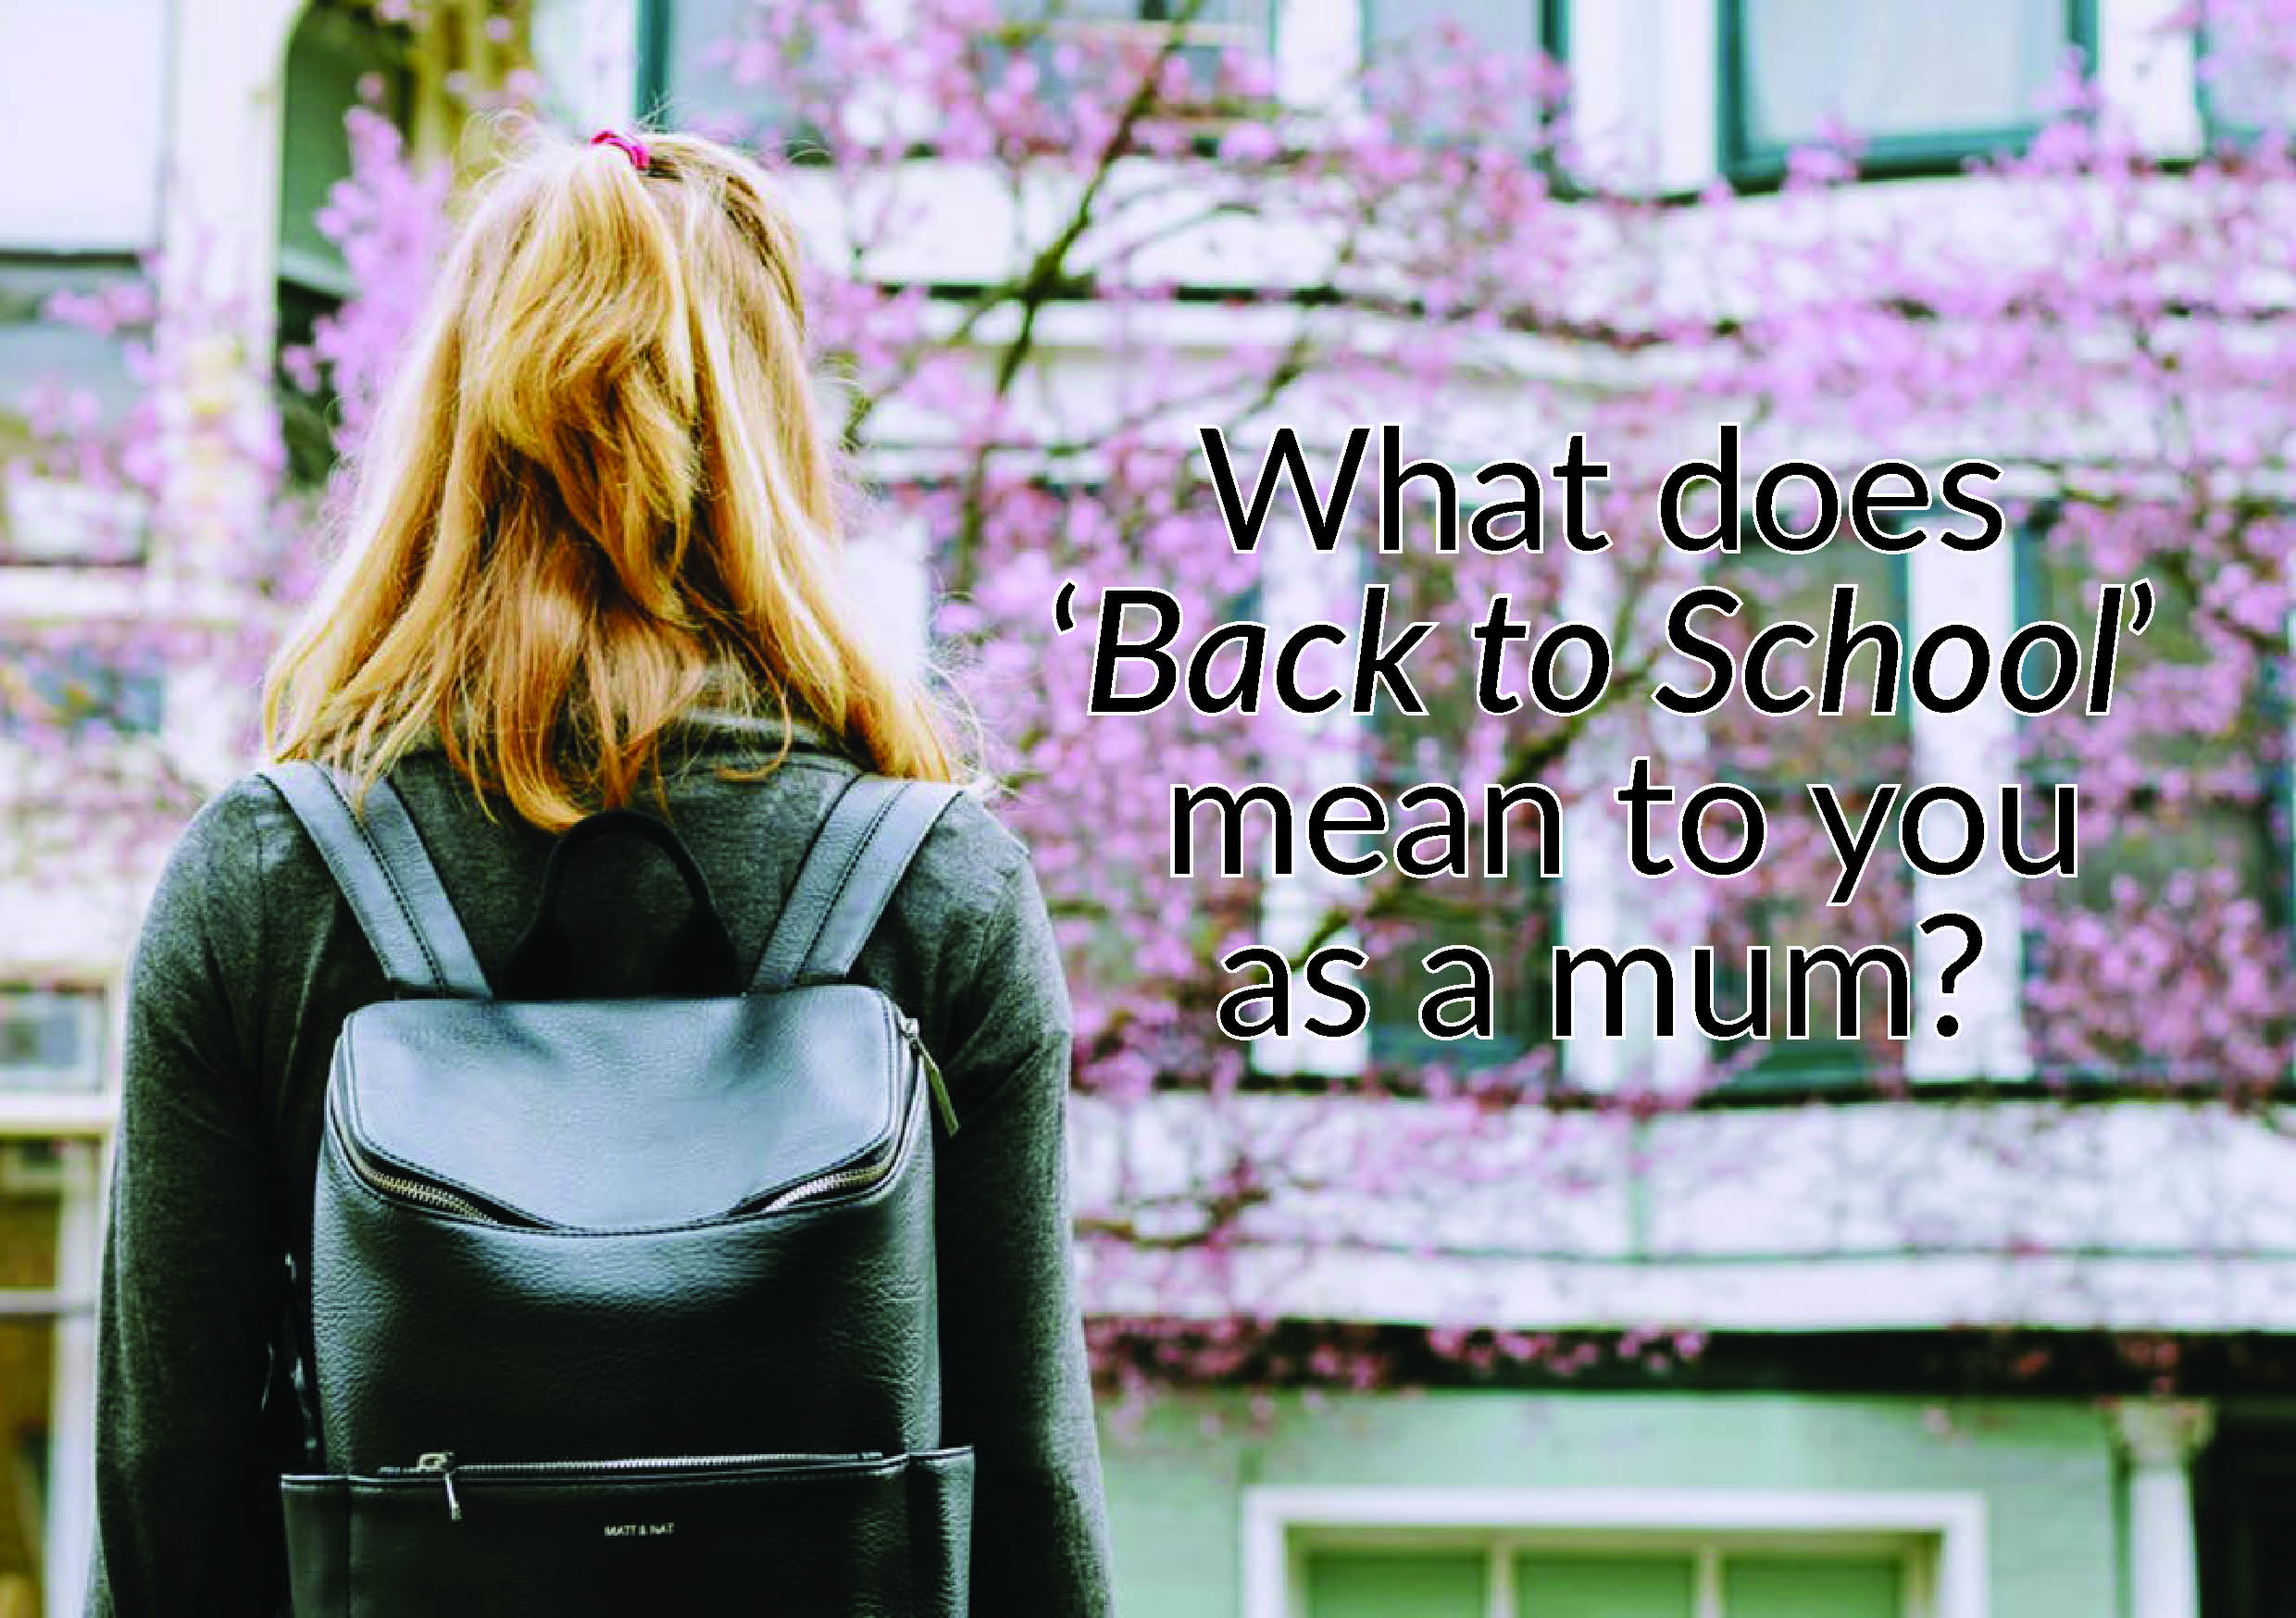 What does 'Back to School' mean to you as a mum?